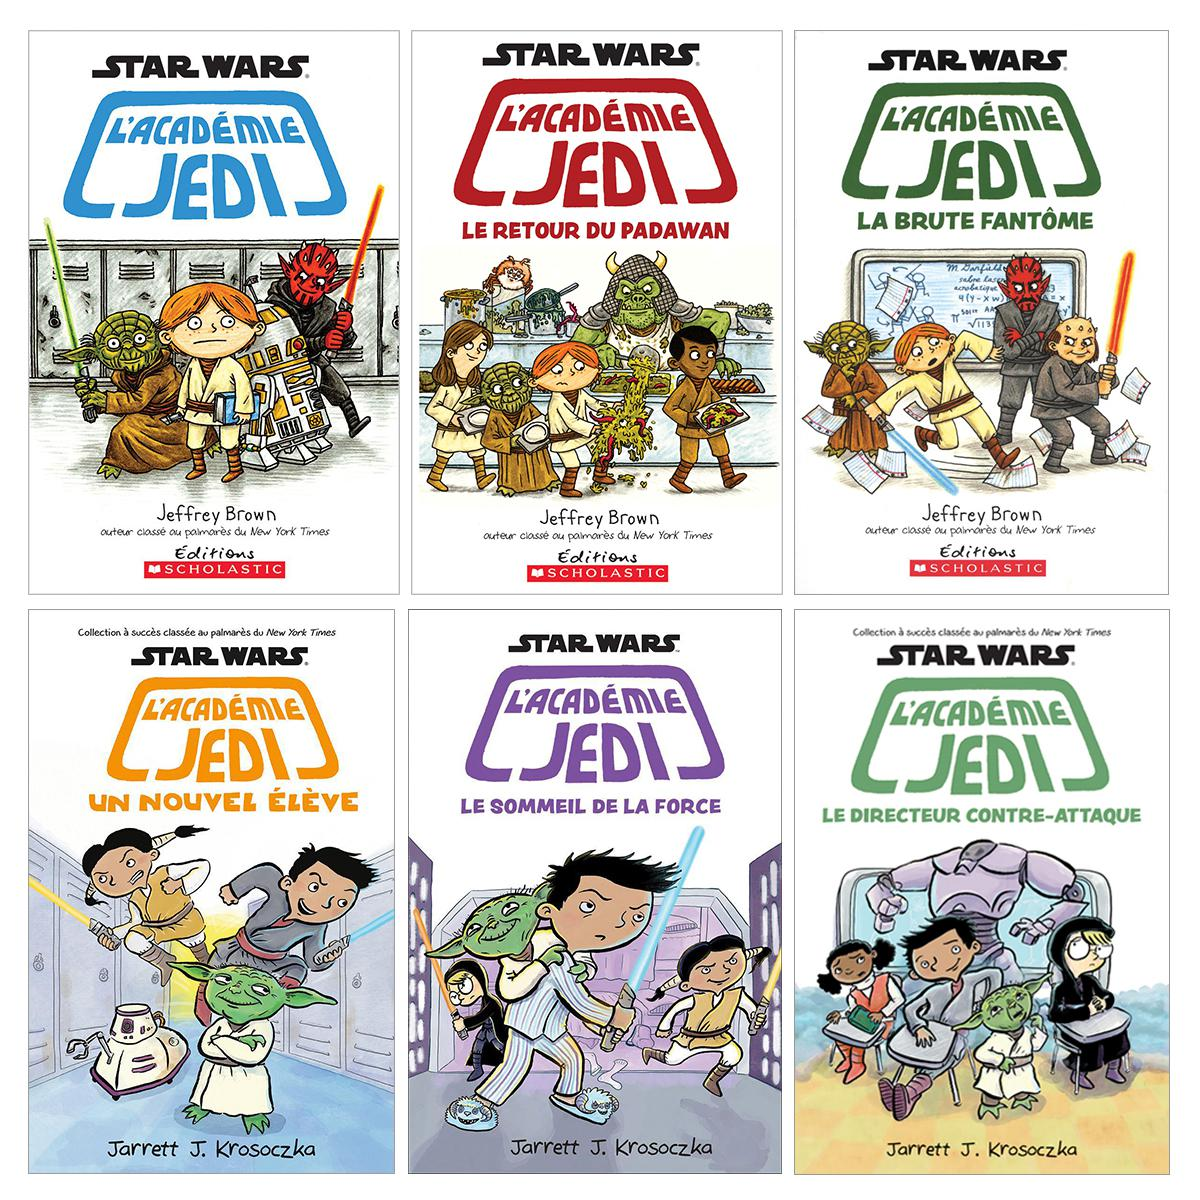 Collection Star Wars : L'académie Jedi